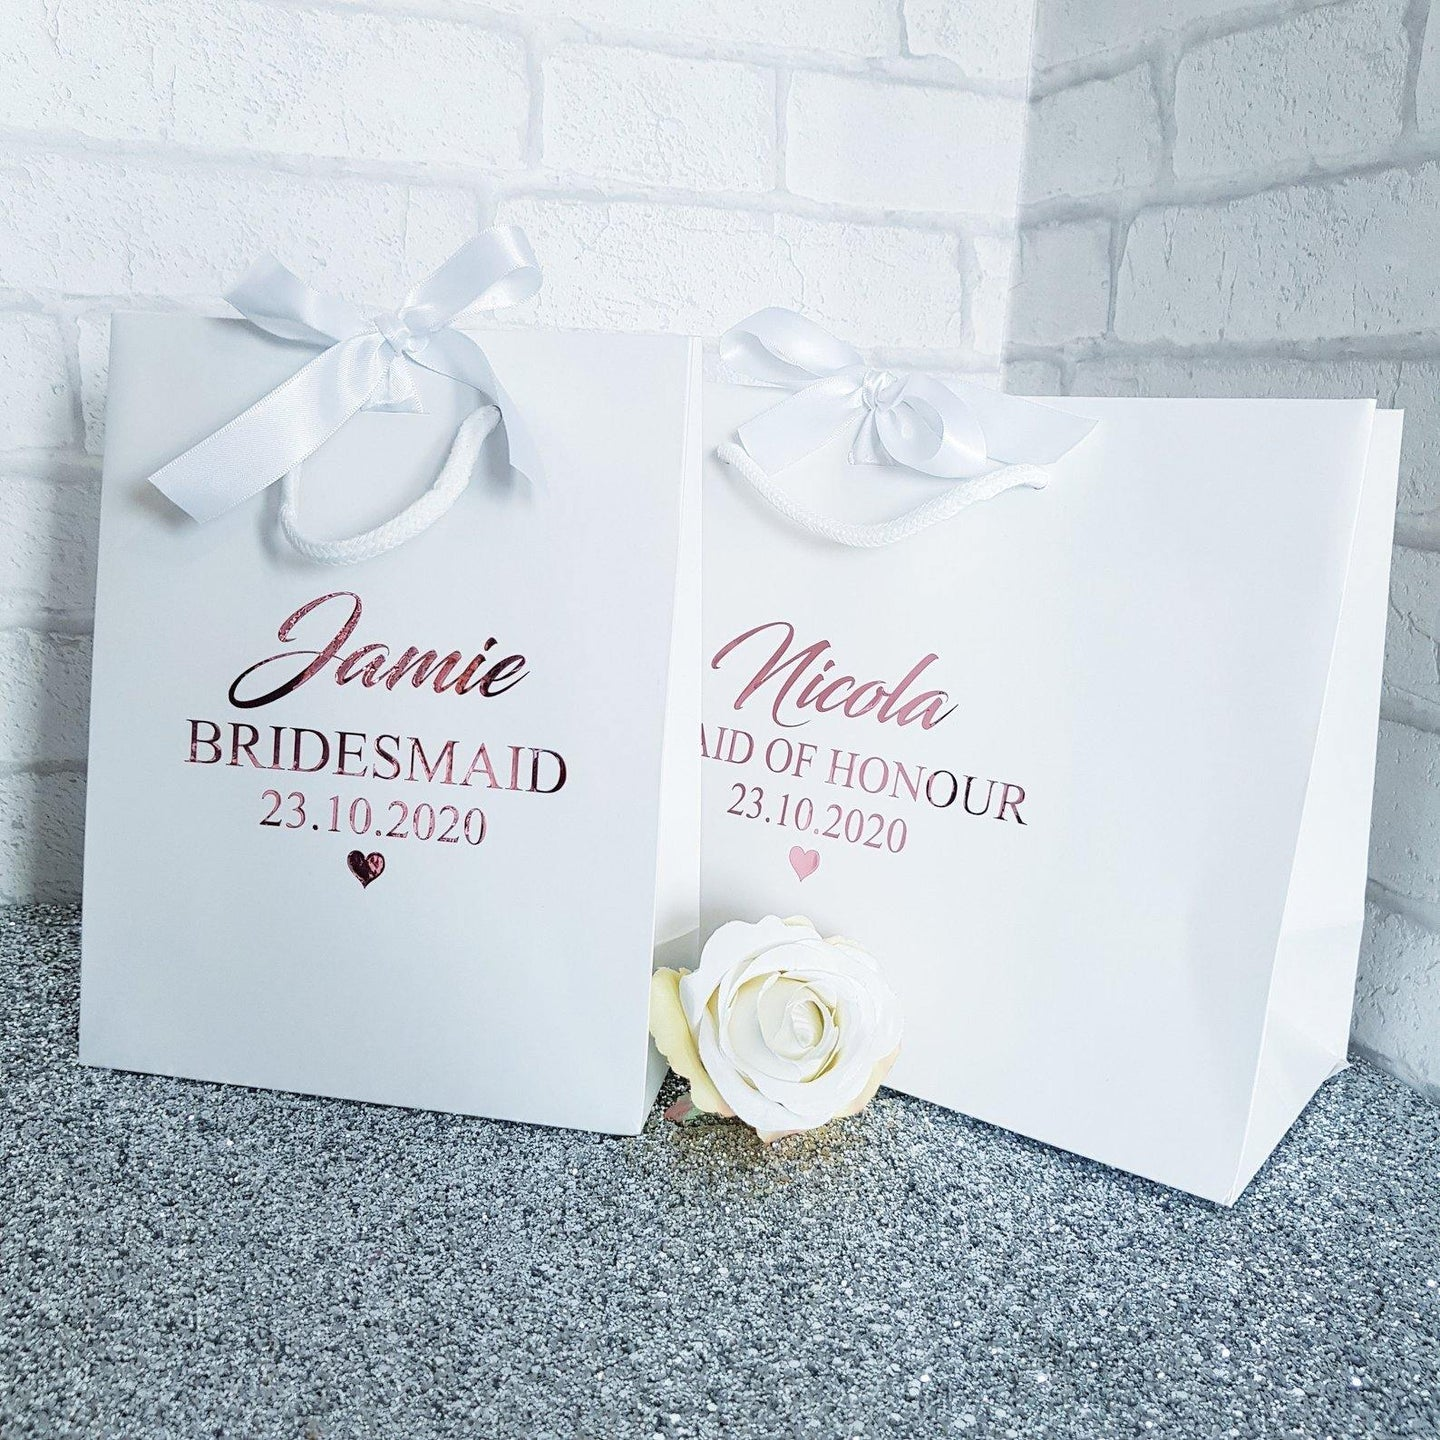 Personalised Bridal gift bags - Robes 4 You